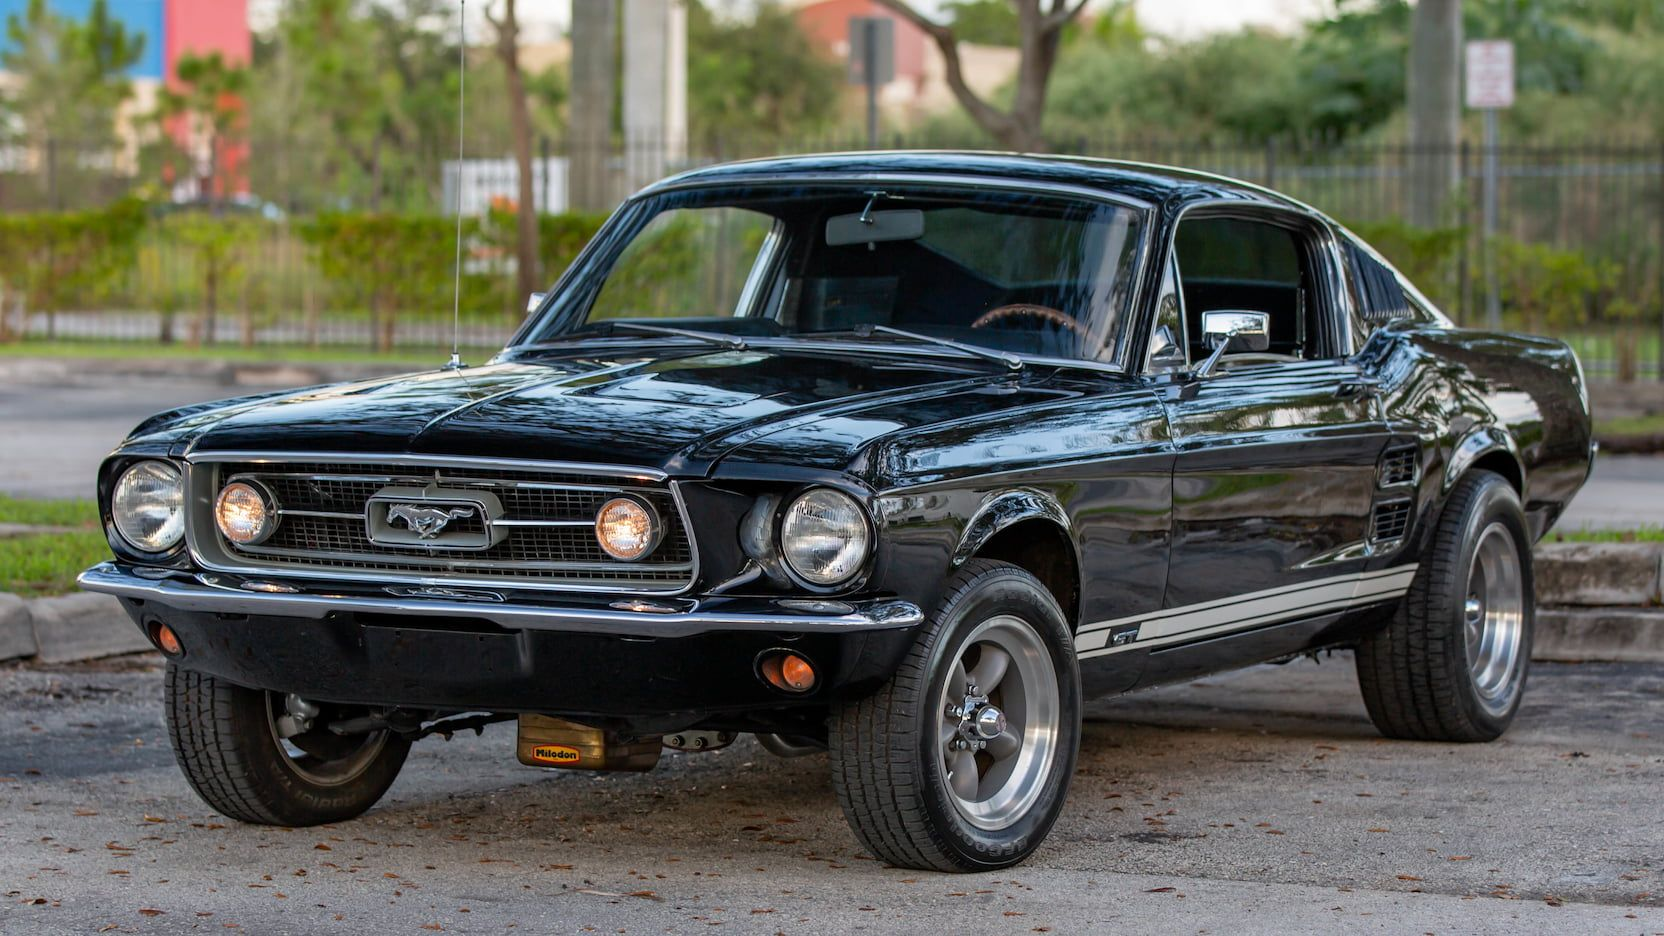 1967 Ford Mustang Gt Fastback R86 Kissimmee 2020 Mustang Gt Ford Mustang Gt Ford Mustang